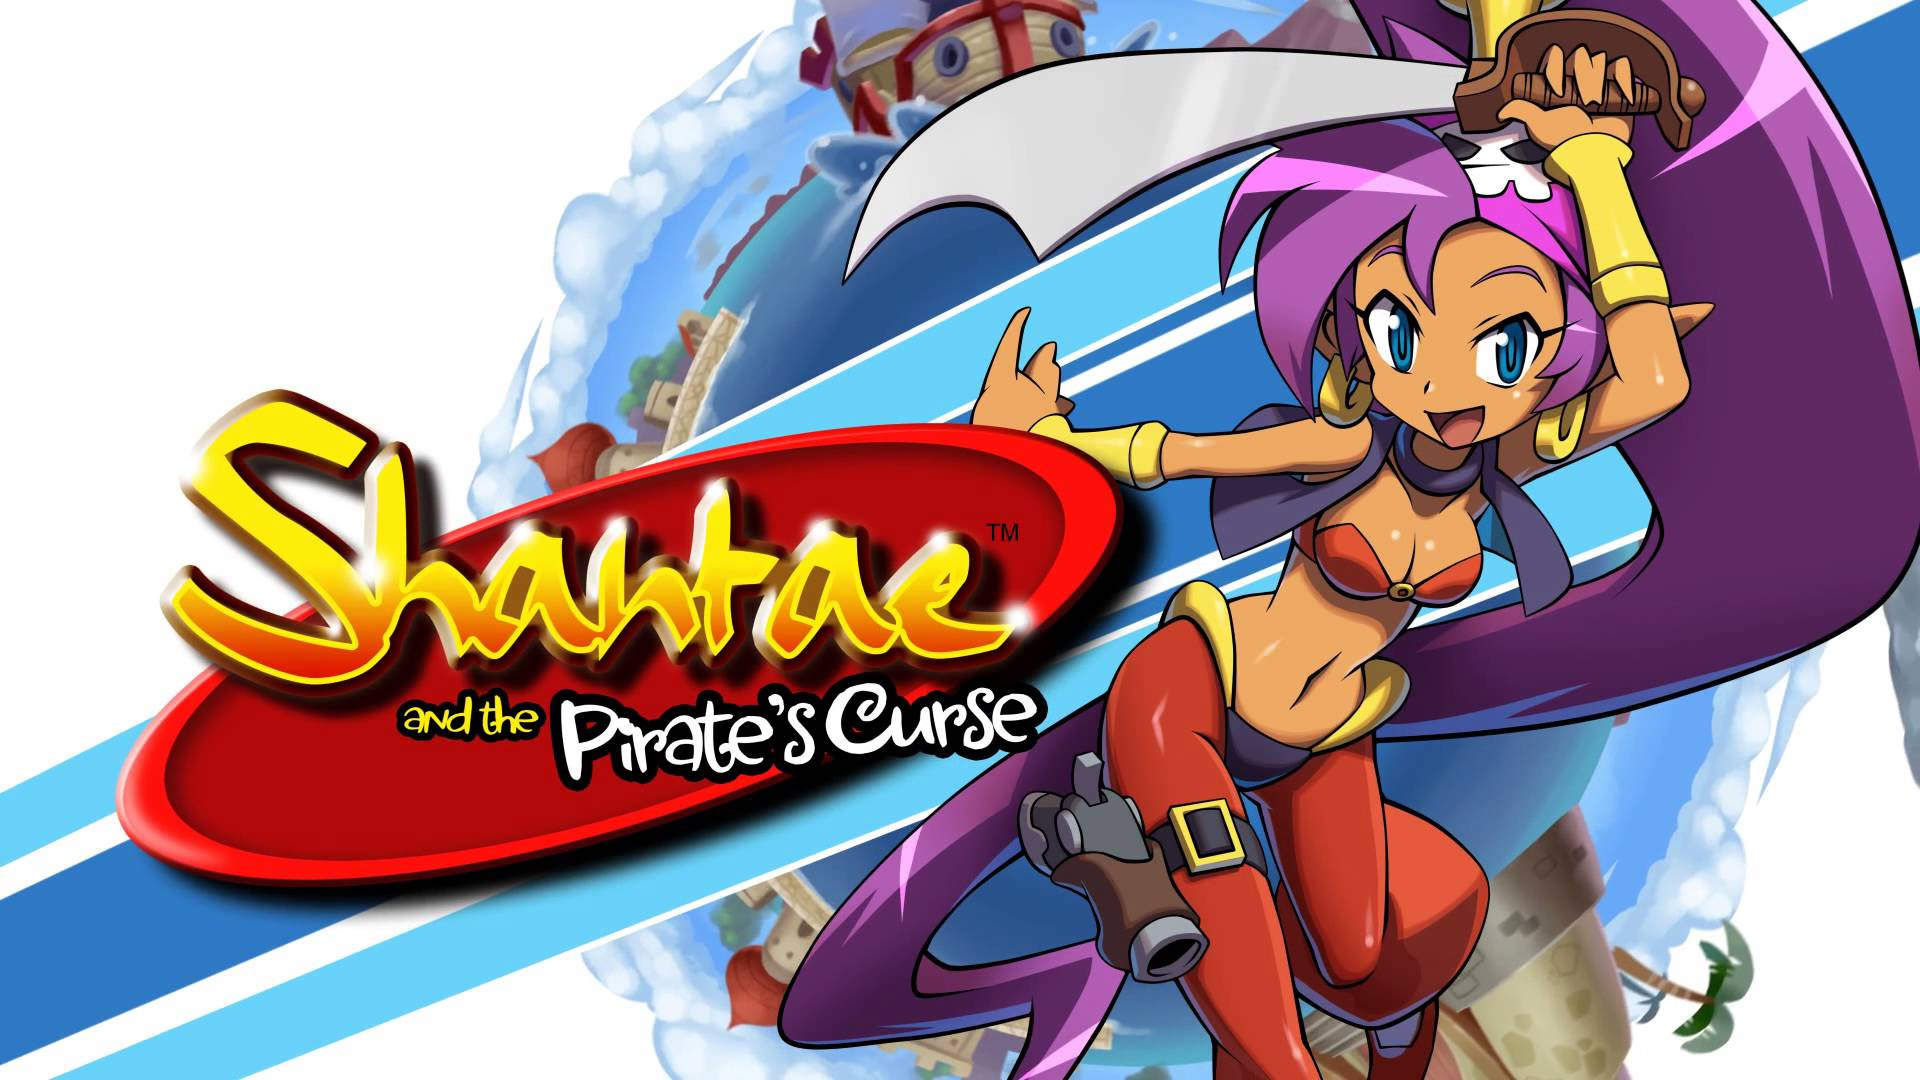 Super Smash Bros For Wii U 3DS To Receive Shantae As DLC Character Rumor